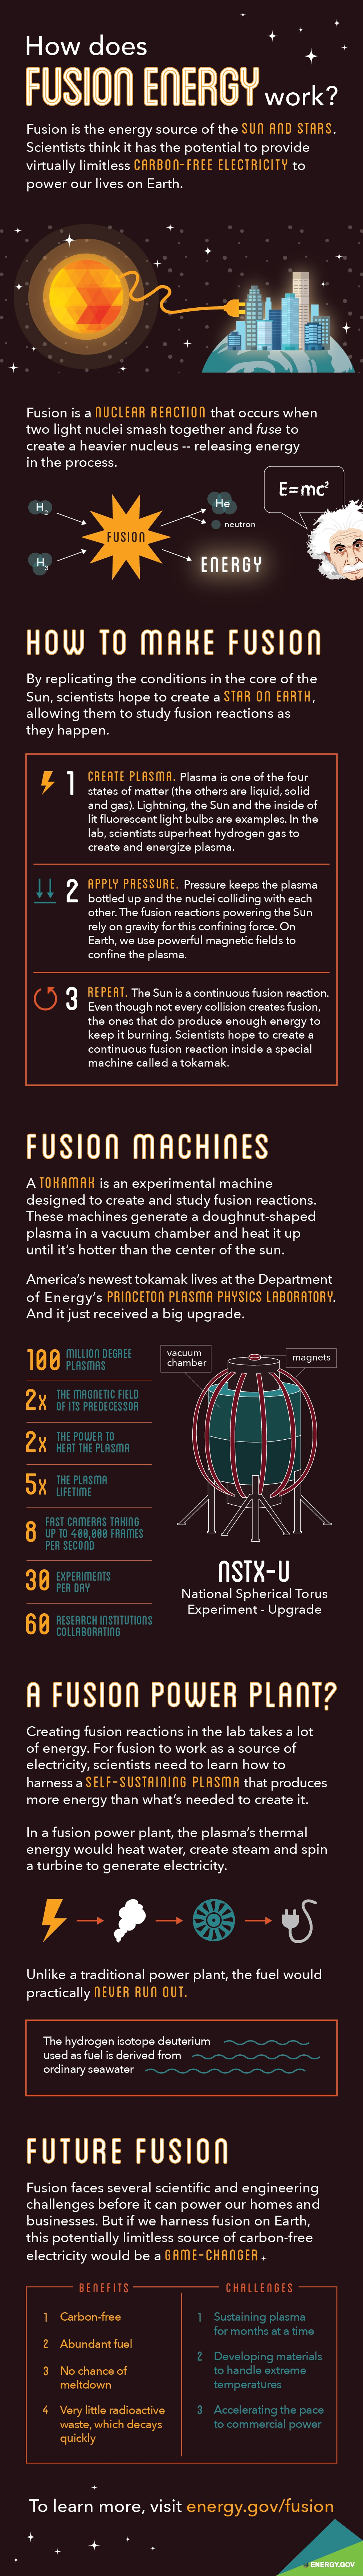 fusion-infographic-final